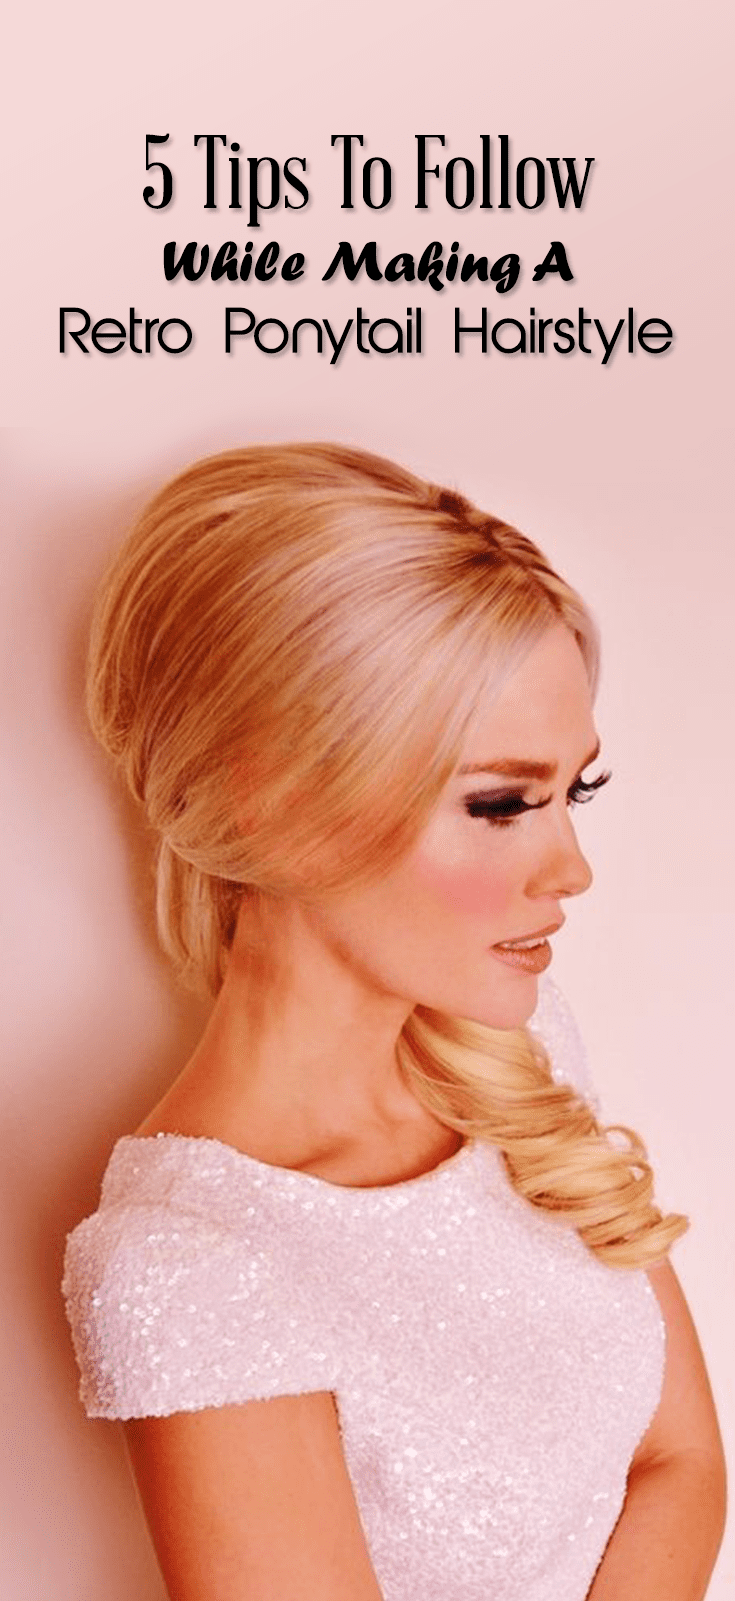 5 tips to follow while making a retro ponytail hairstyle